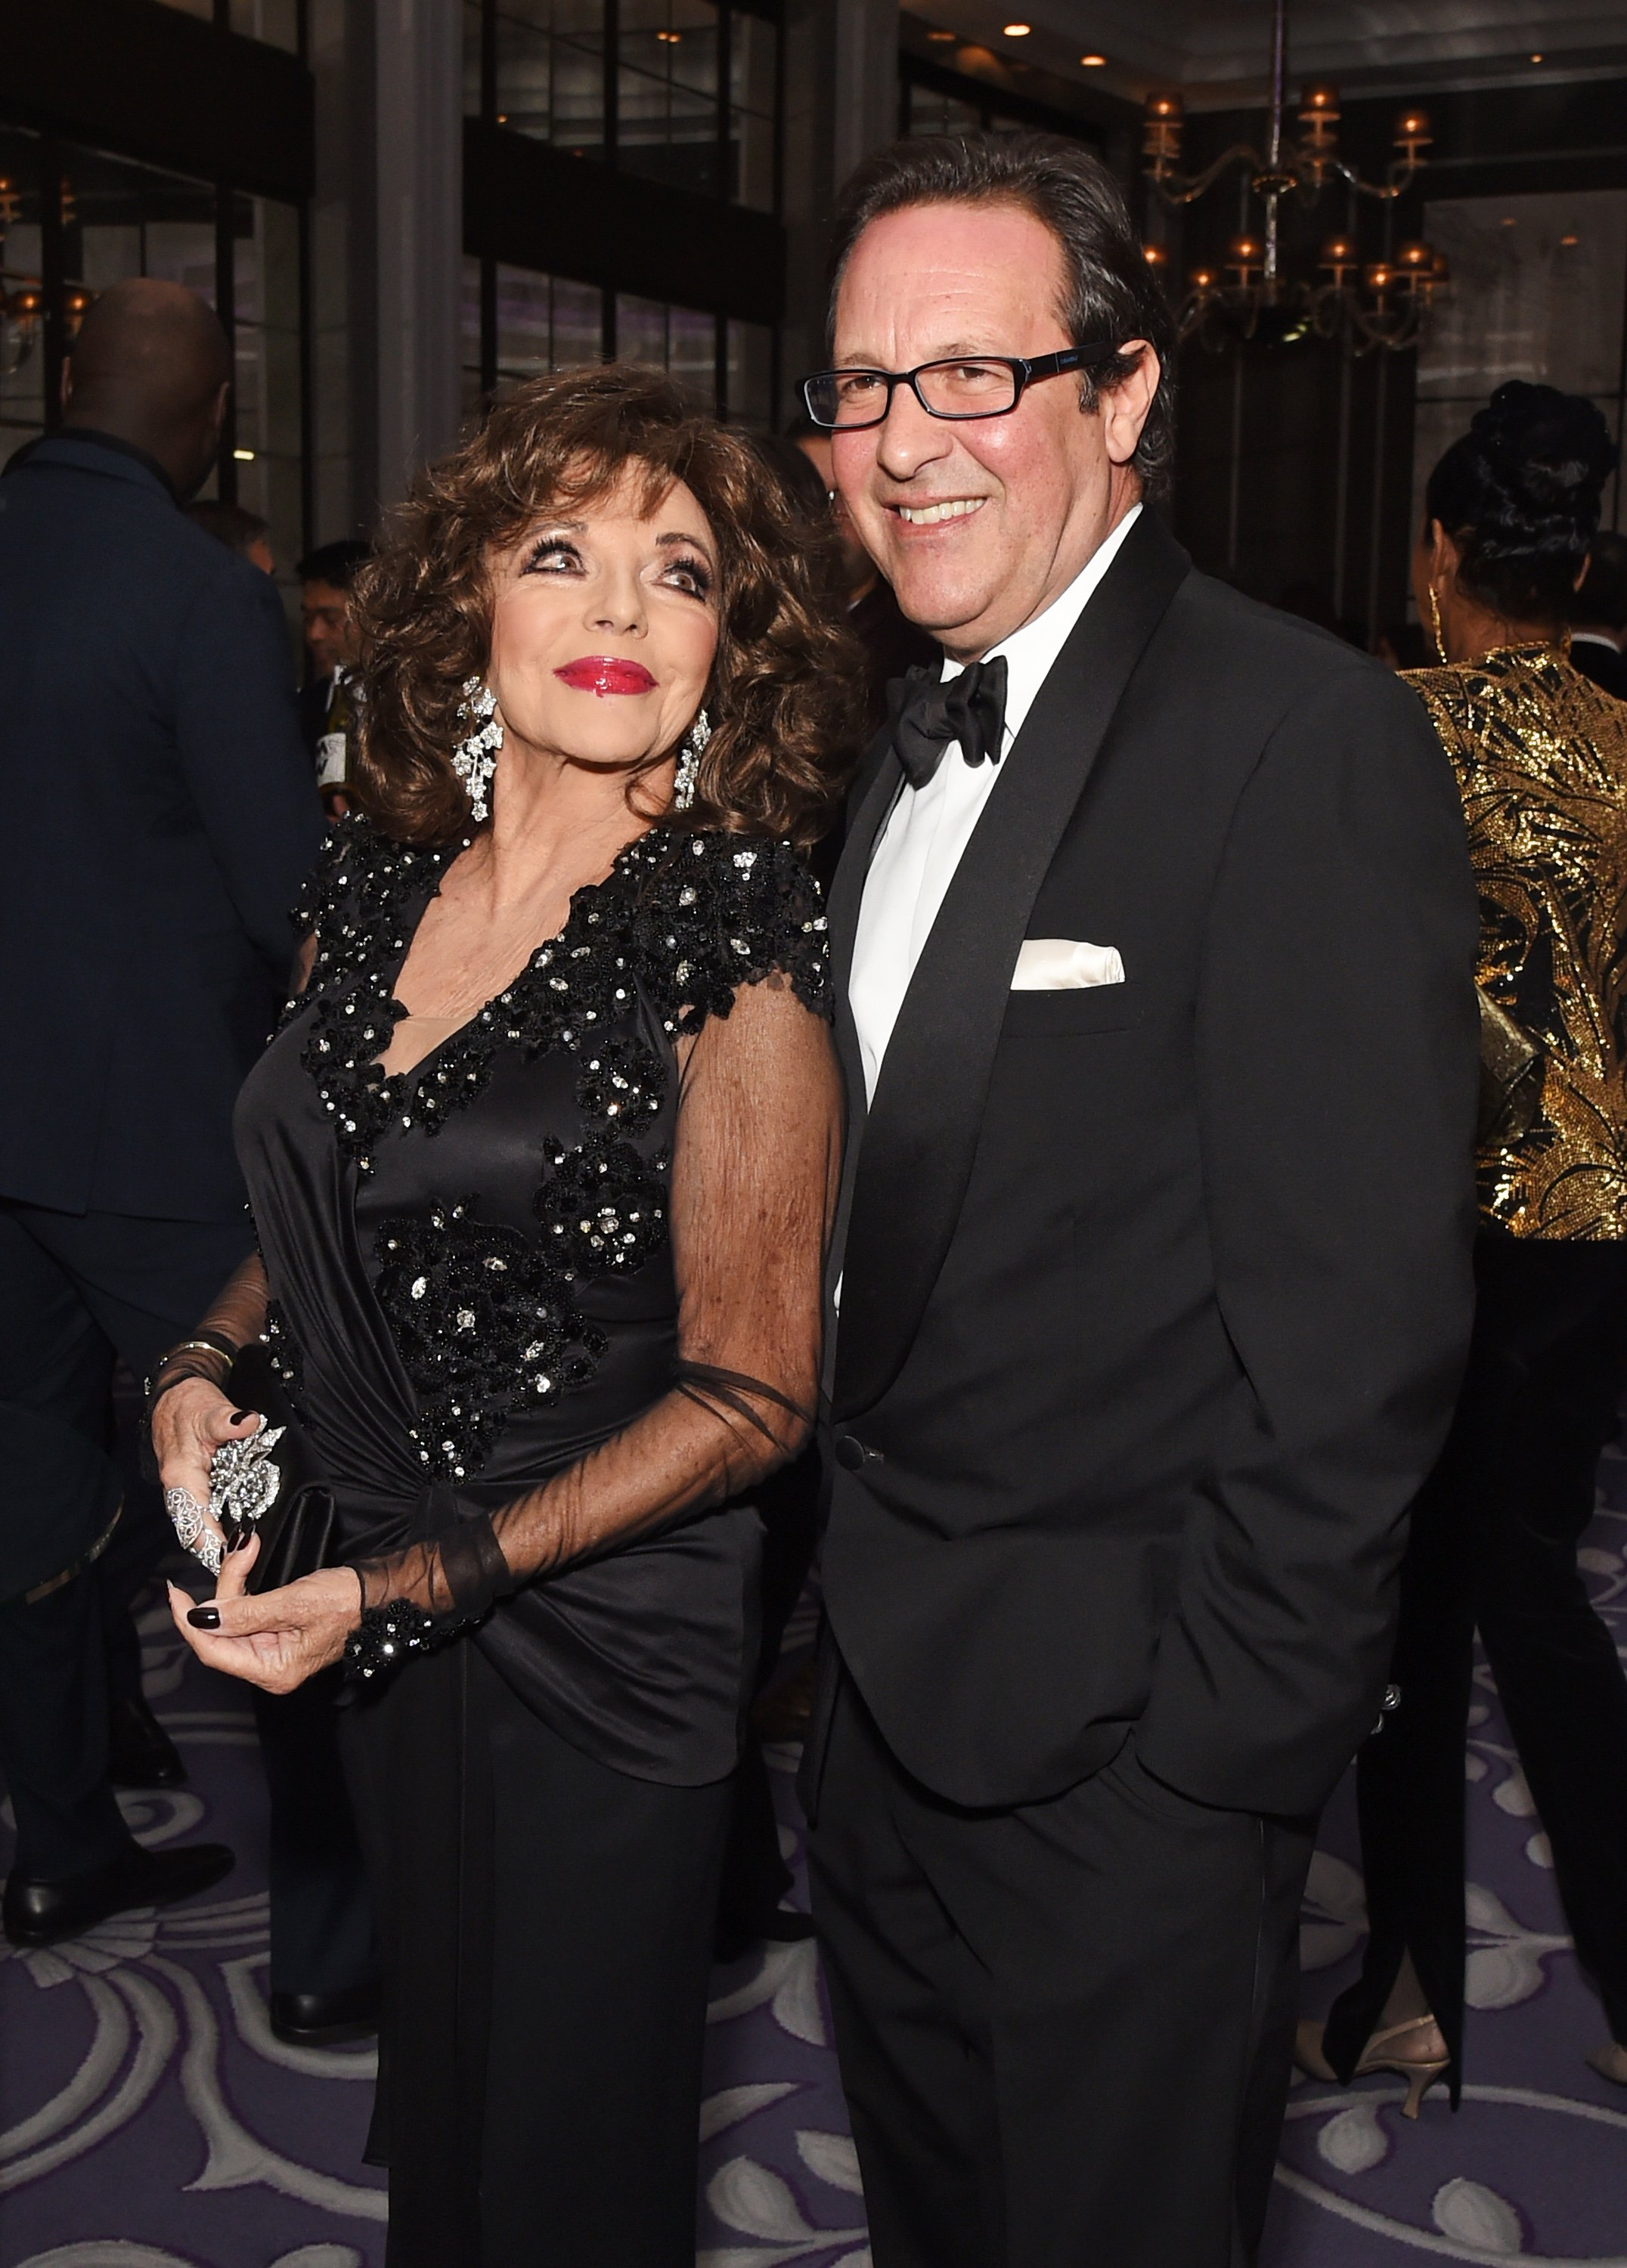 Joan Collins and Percy Gibson at the 8th Global Gift Gala London in aid of Great Ormond Street Hospital Children's Charity on November 18, 2017 | Source: Getty Images